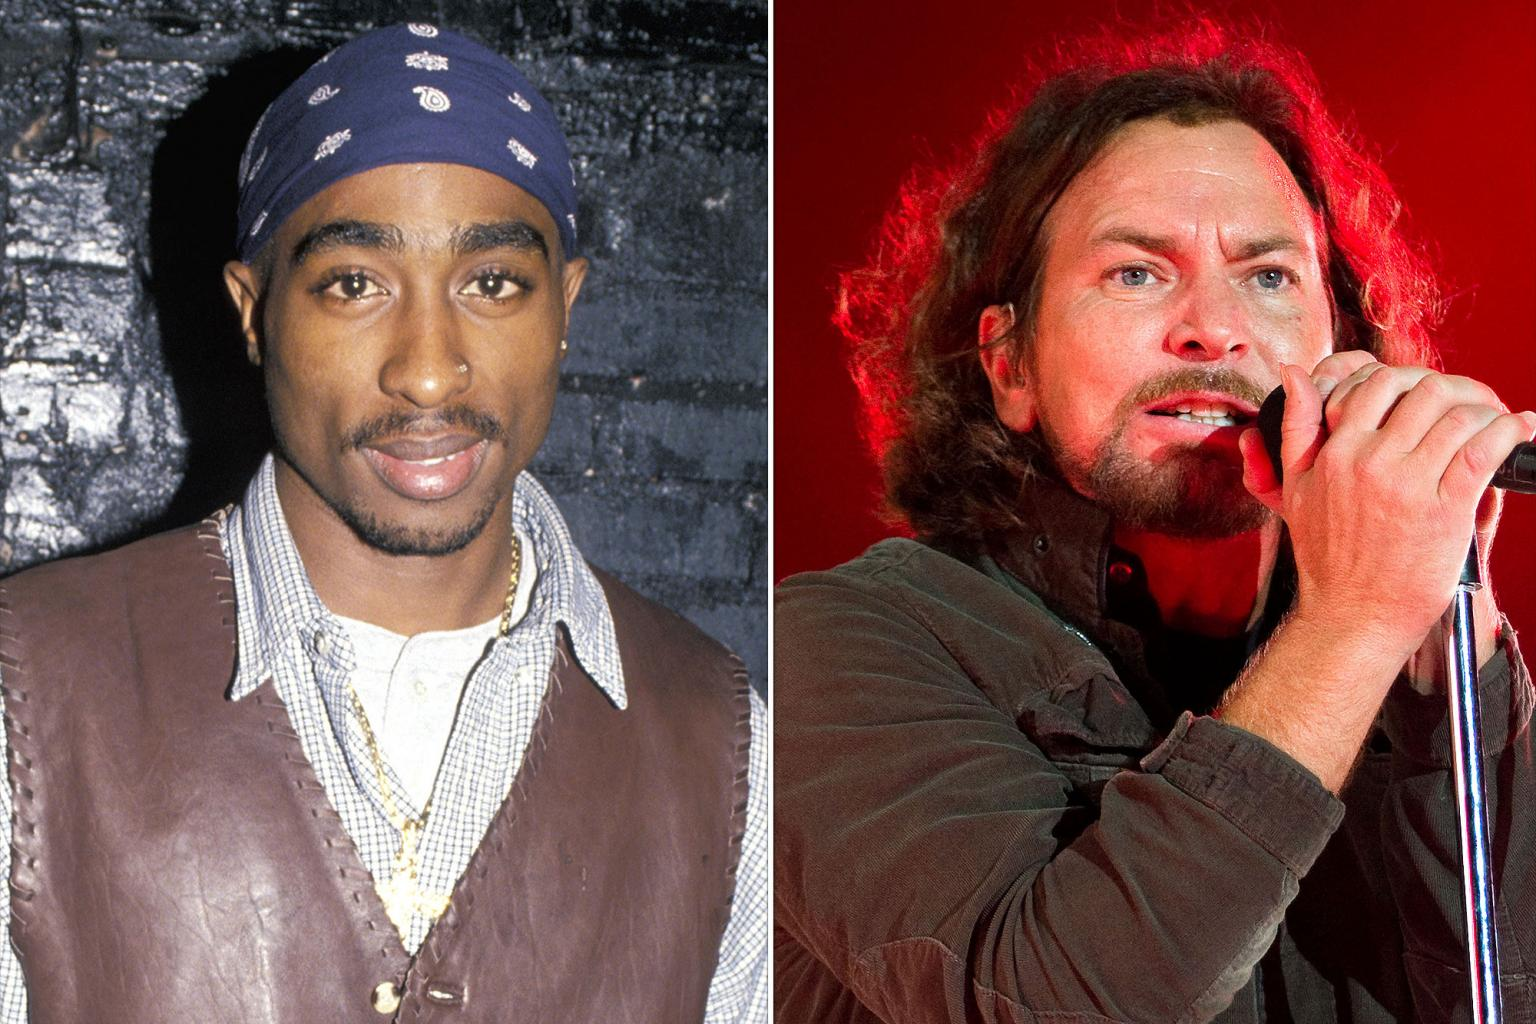 2017 Rock and Roll Hall of Fame Class Announced: Inductees Include Tupac, Pearl Jam and Joan Baez